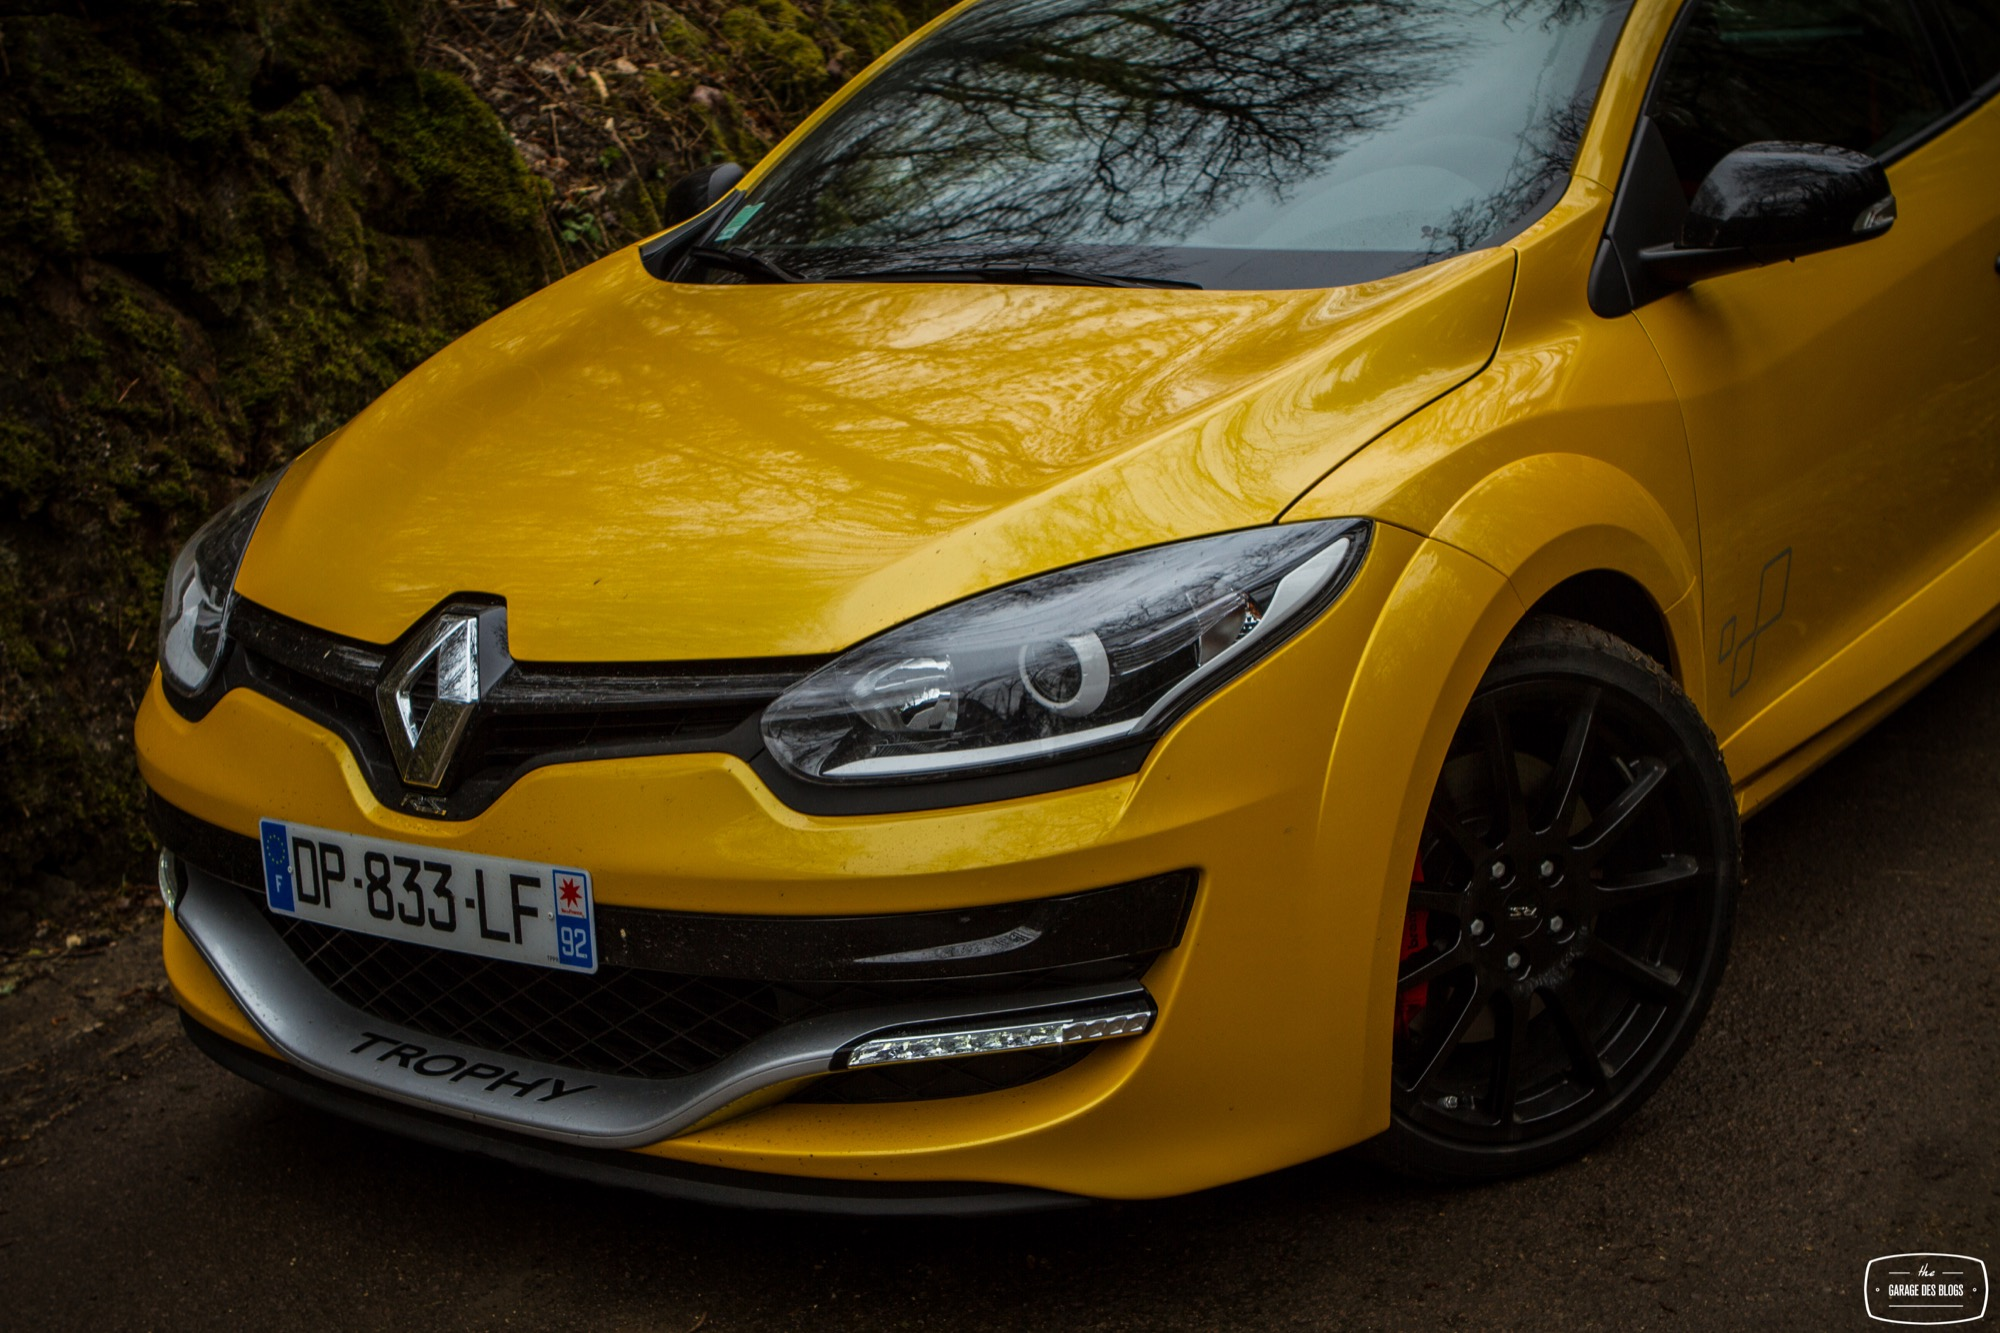 essai renault megane rs 275 trophy ohlins exterieur 28 le blog de viinz. Black Bedroom Furniture Sets. Home Design Ideas